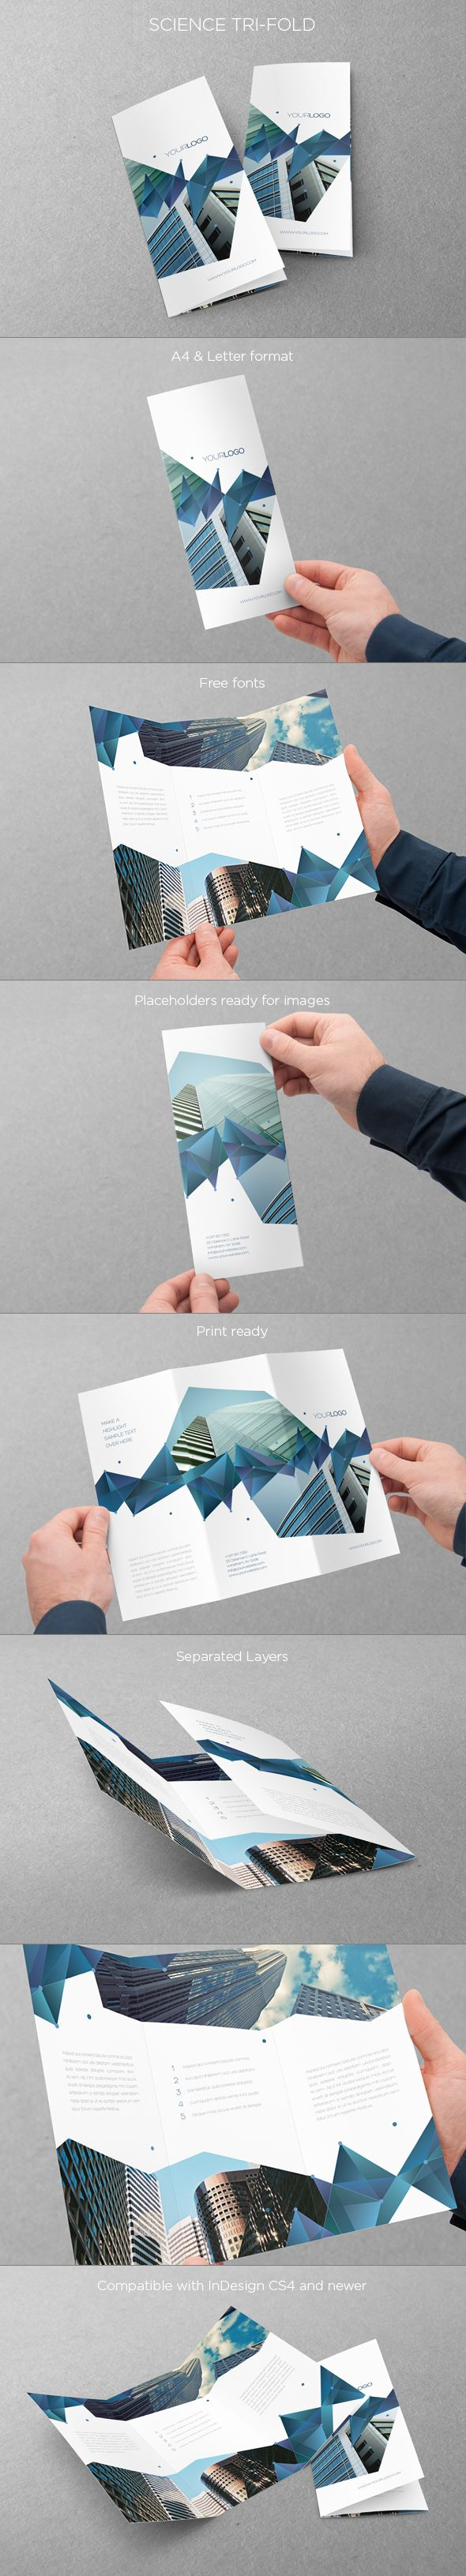 Science Trifold. Download here: http://graphicriver.net/item/science-trifold/5696046 #design #trifold #brochure